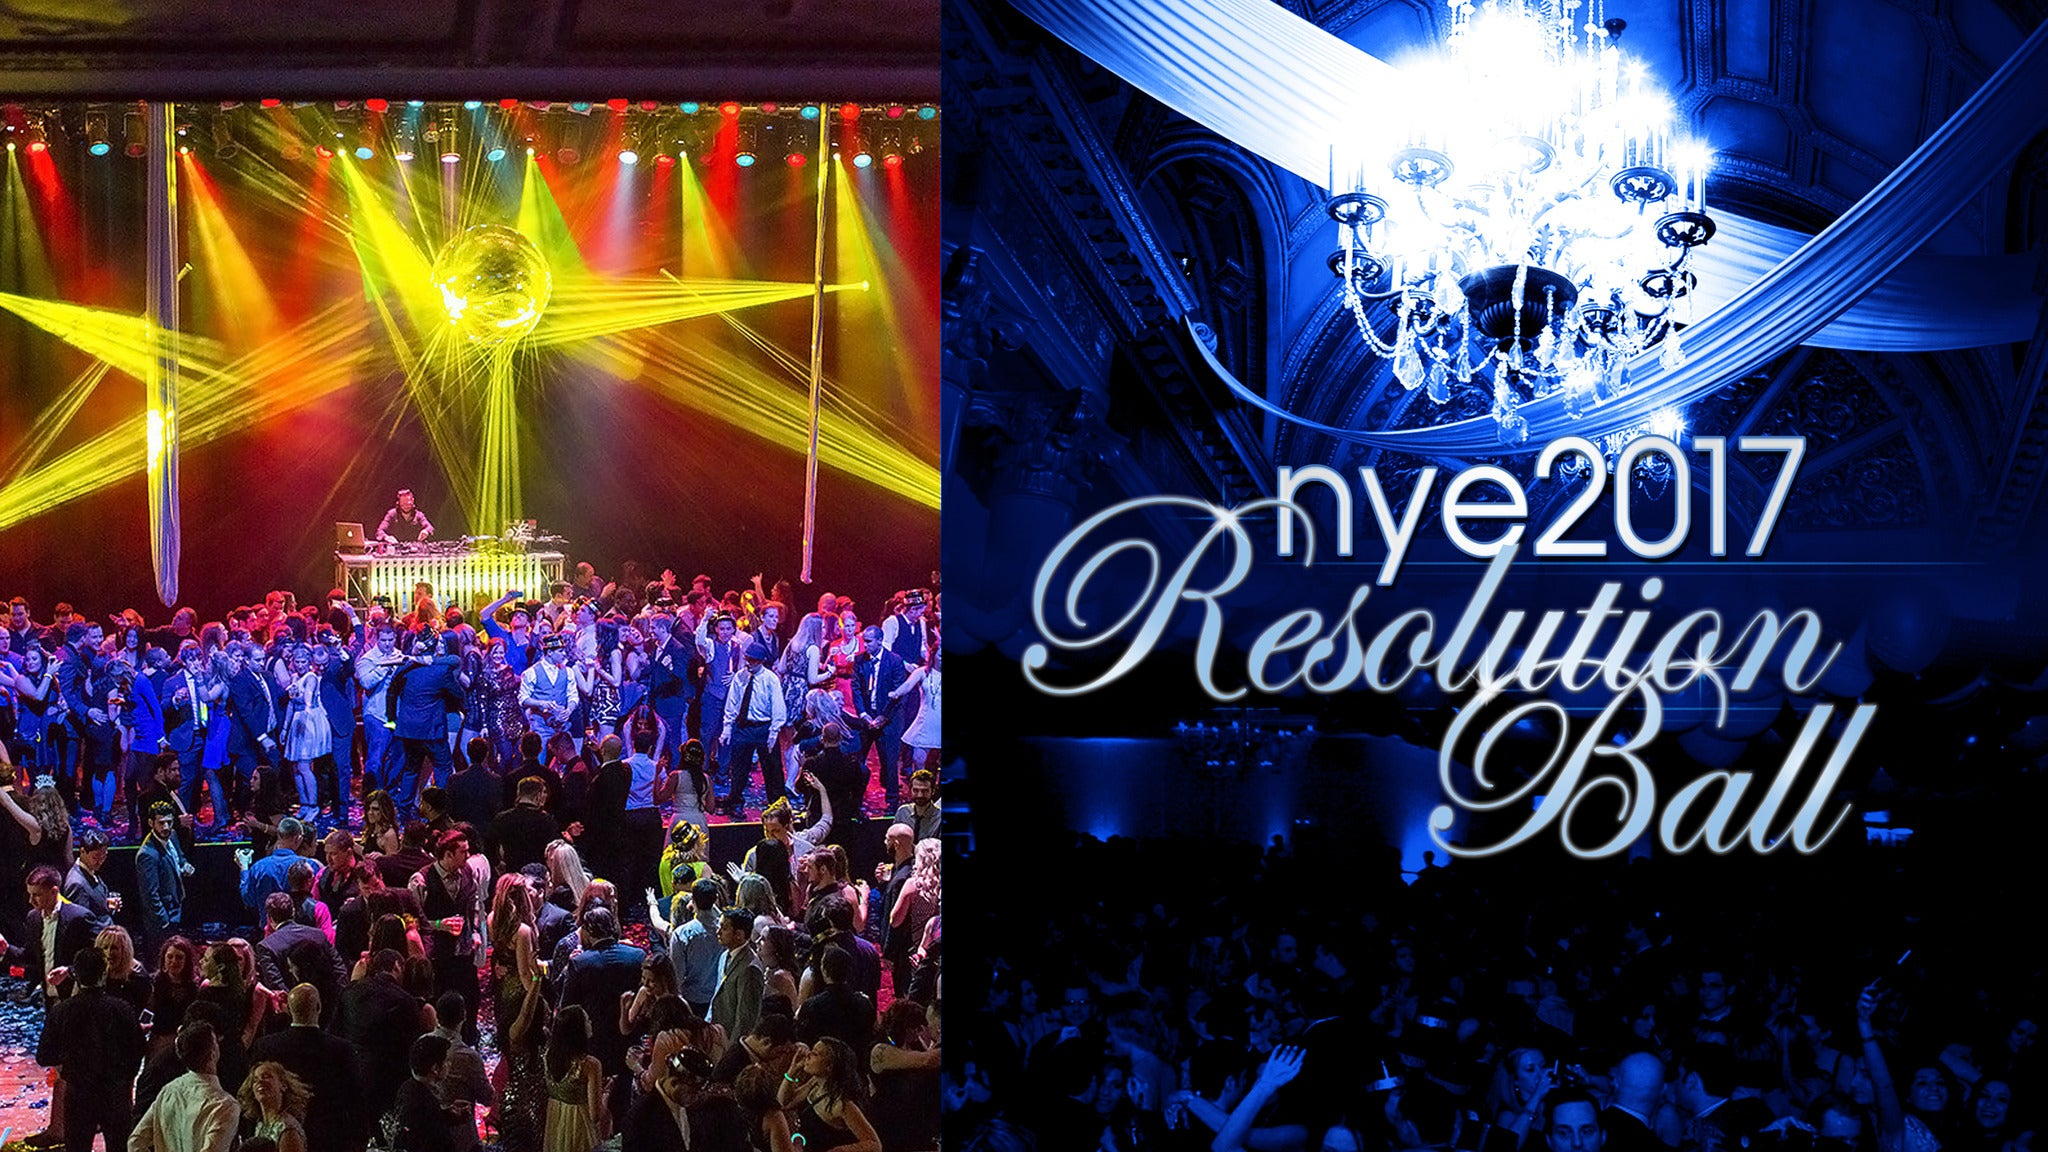 New Year's Eve Resolution Ball at The Fillmore Detroit